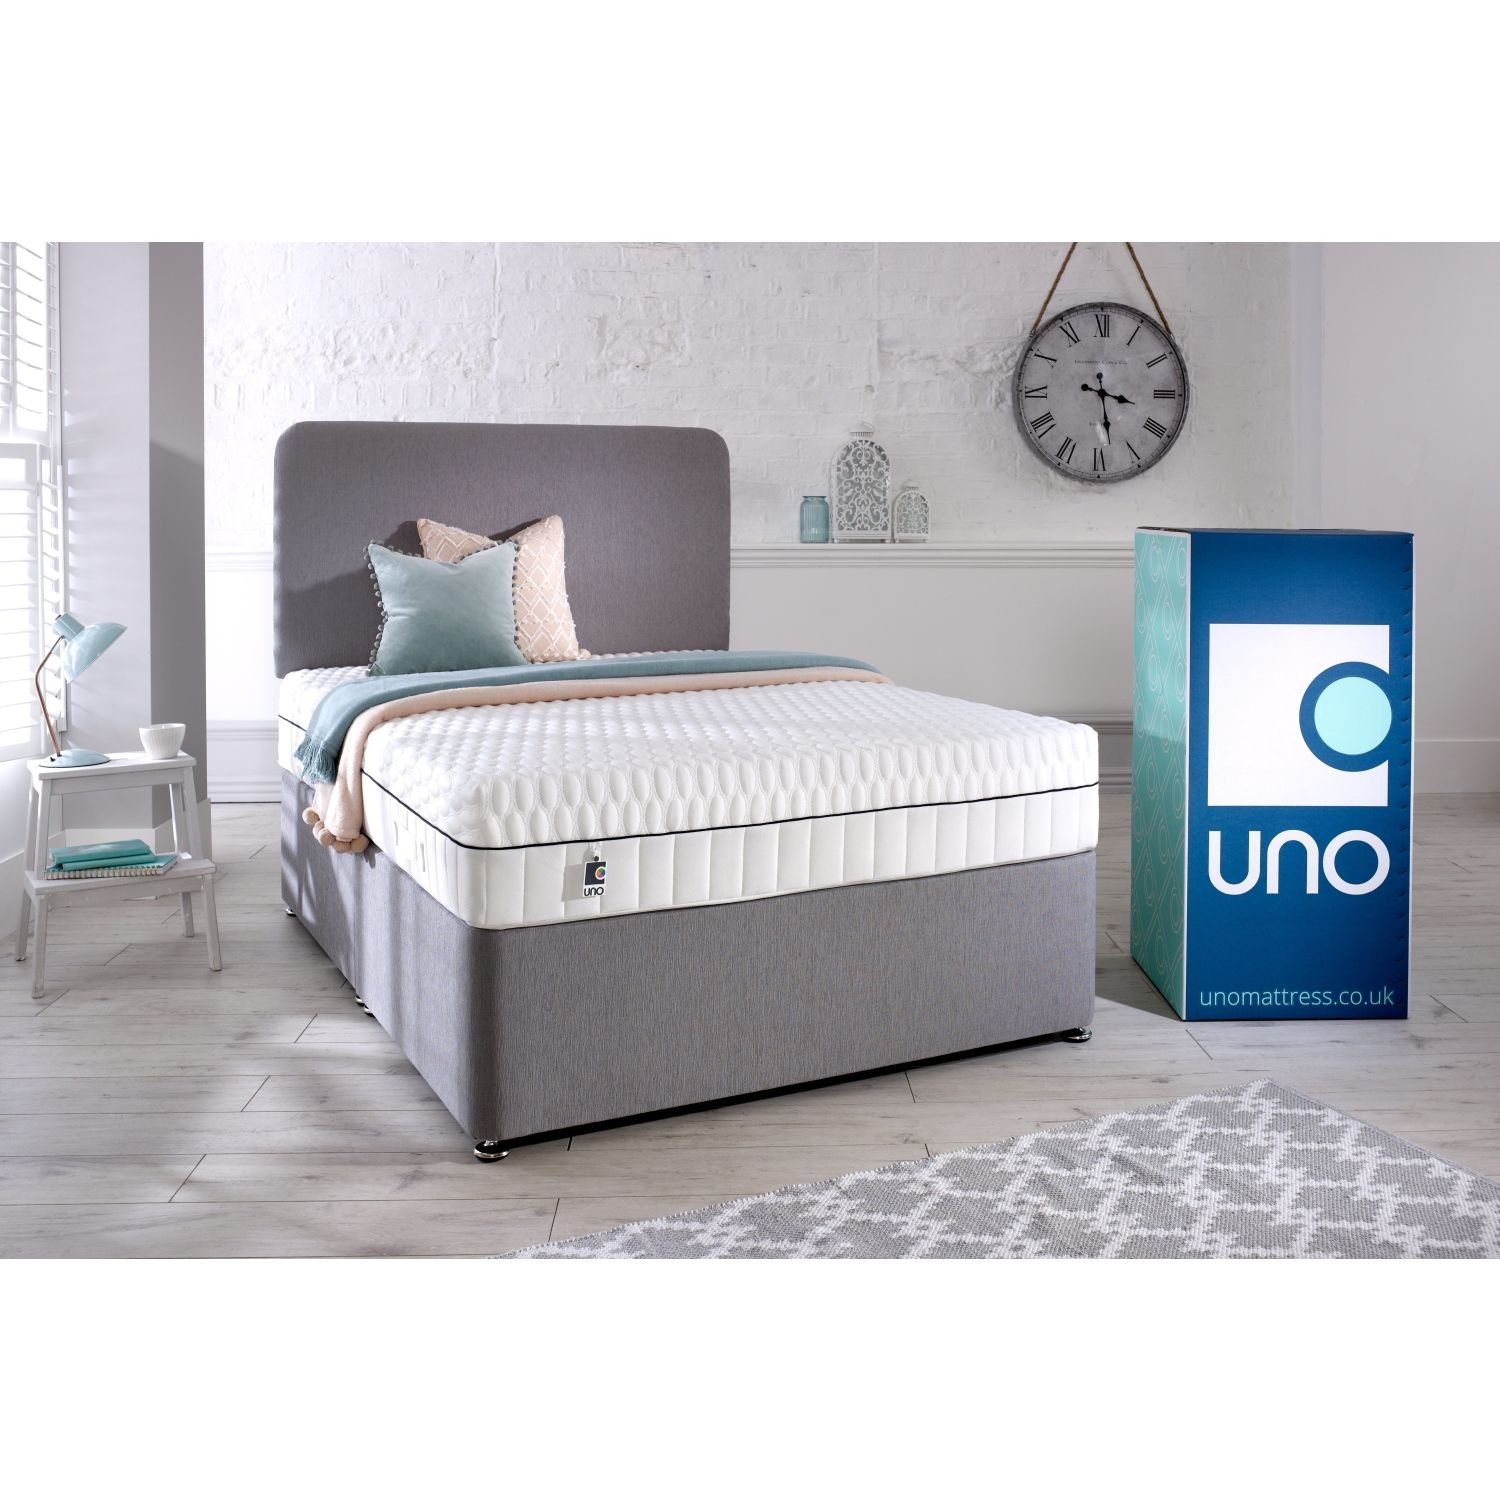 Breasley Mattress Review Breasley Uno Breathe Boxed Mattress Double